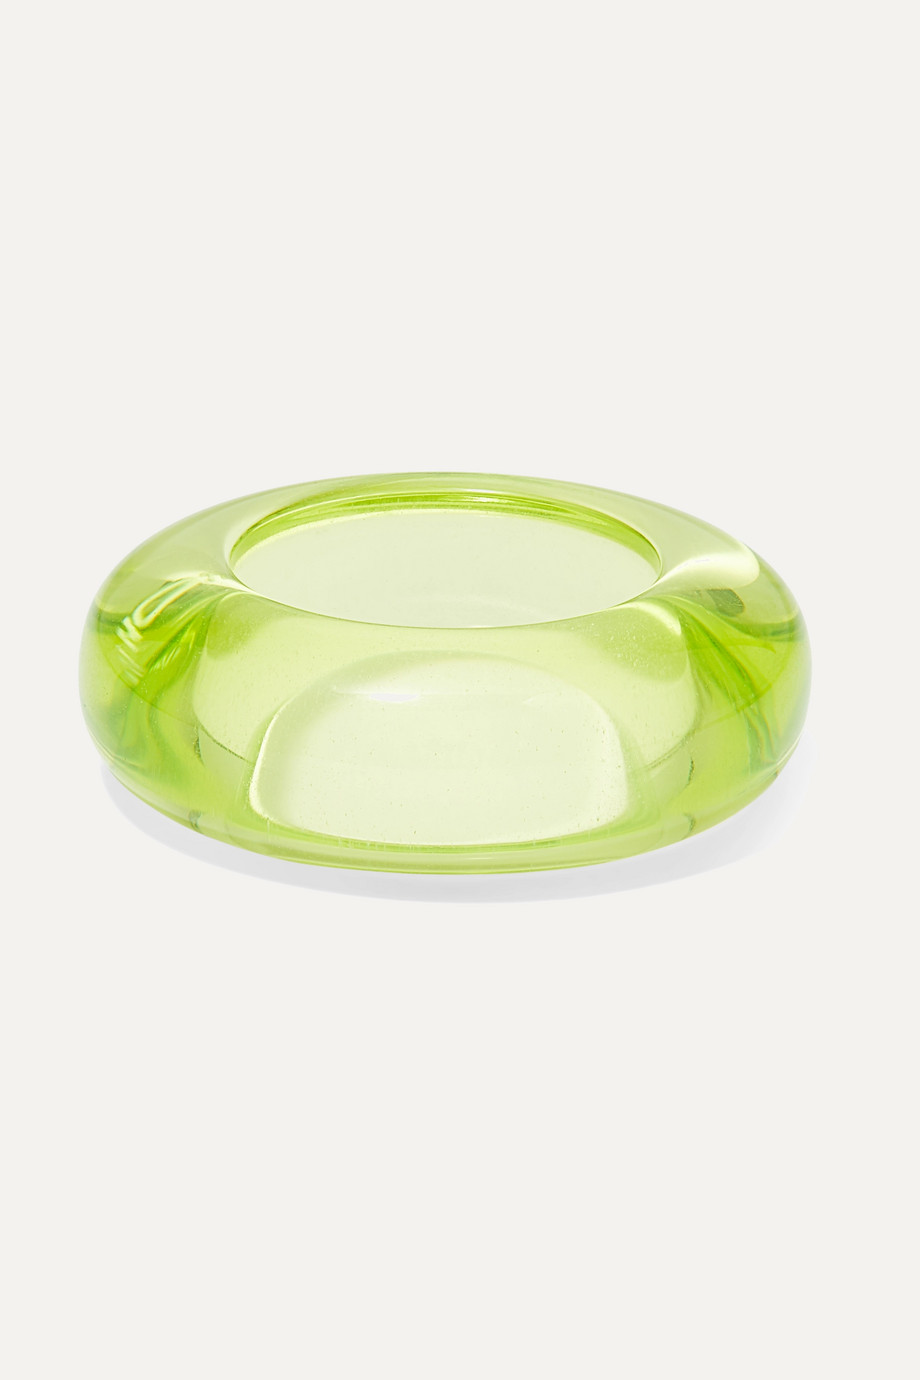 Dries Van Noten Perspex ring